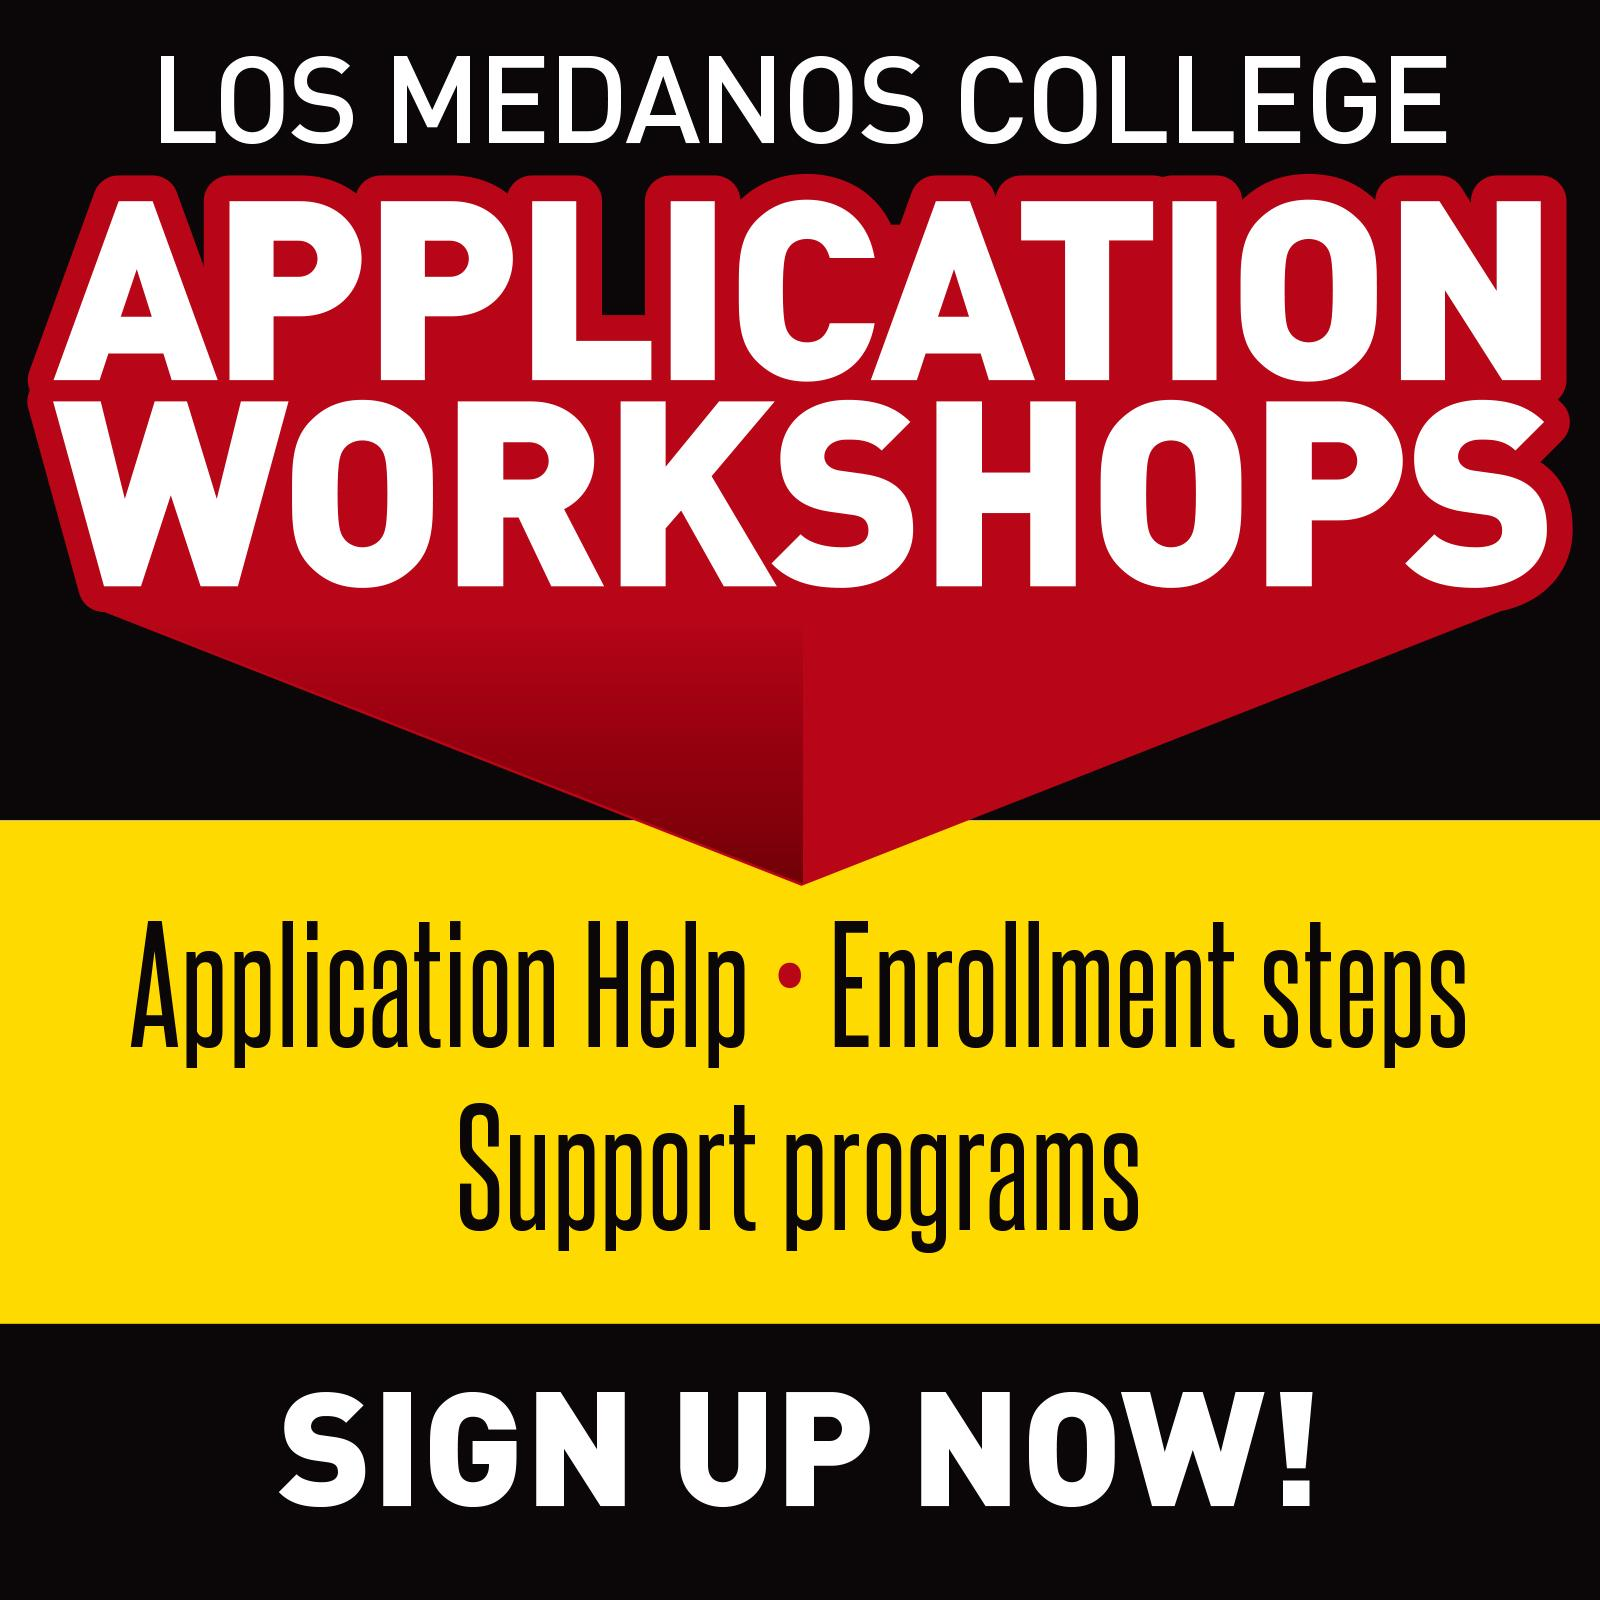 New to LMC? Sign up for an application workshop to walk you through the process